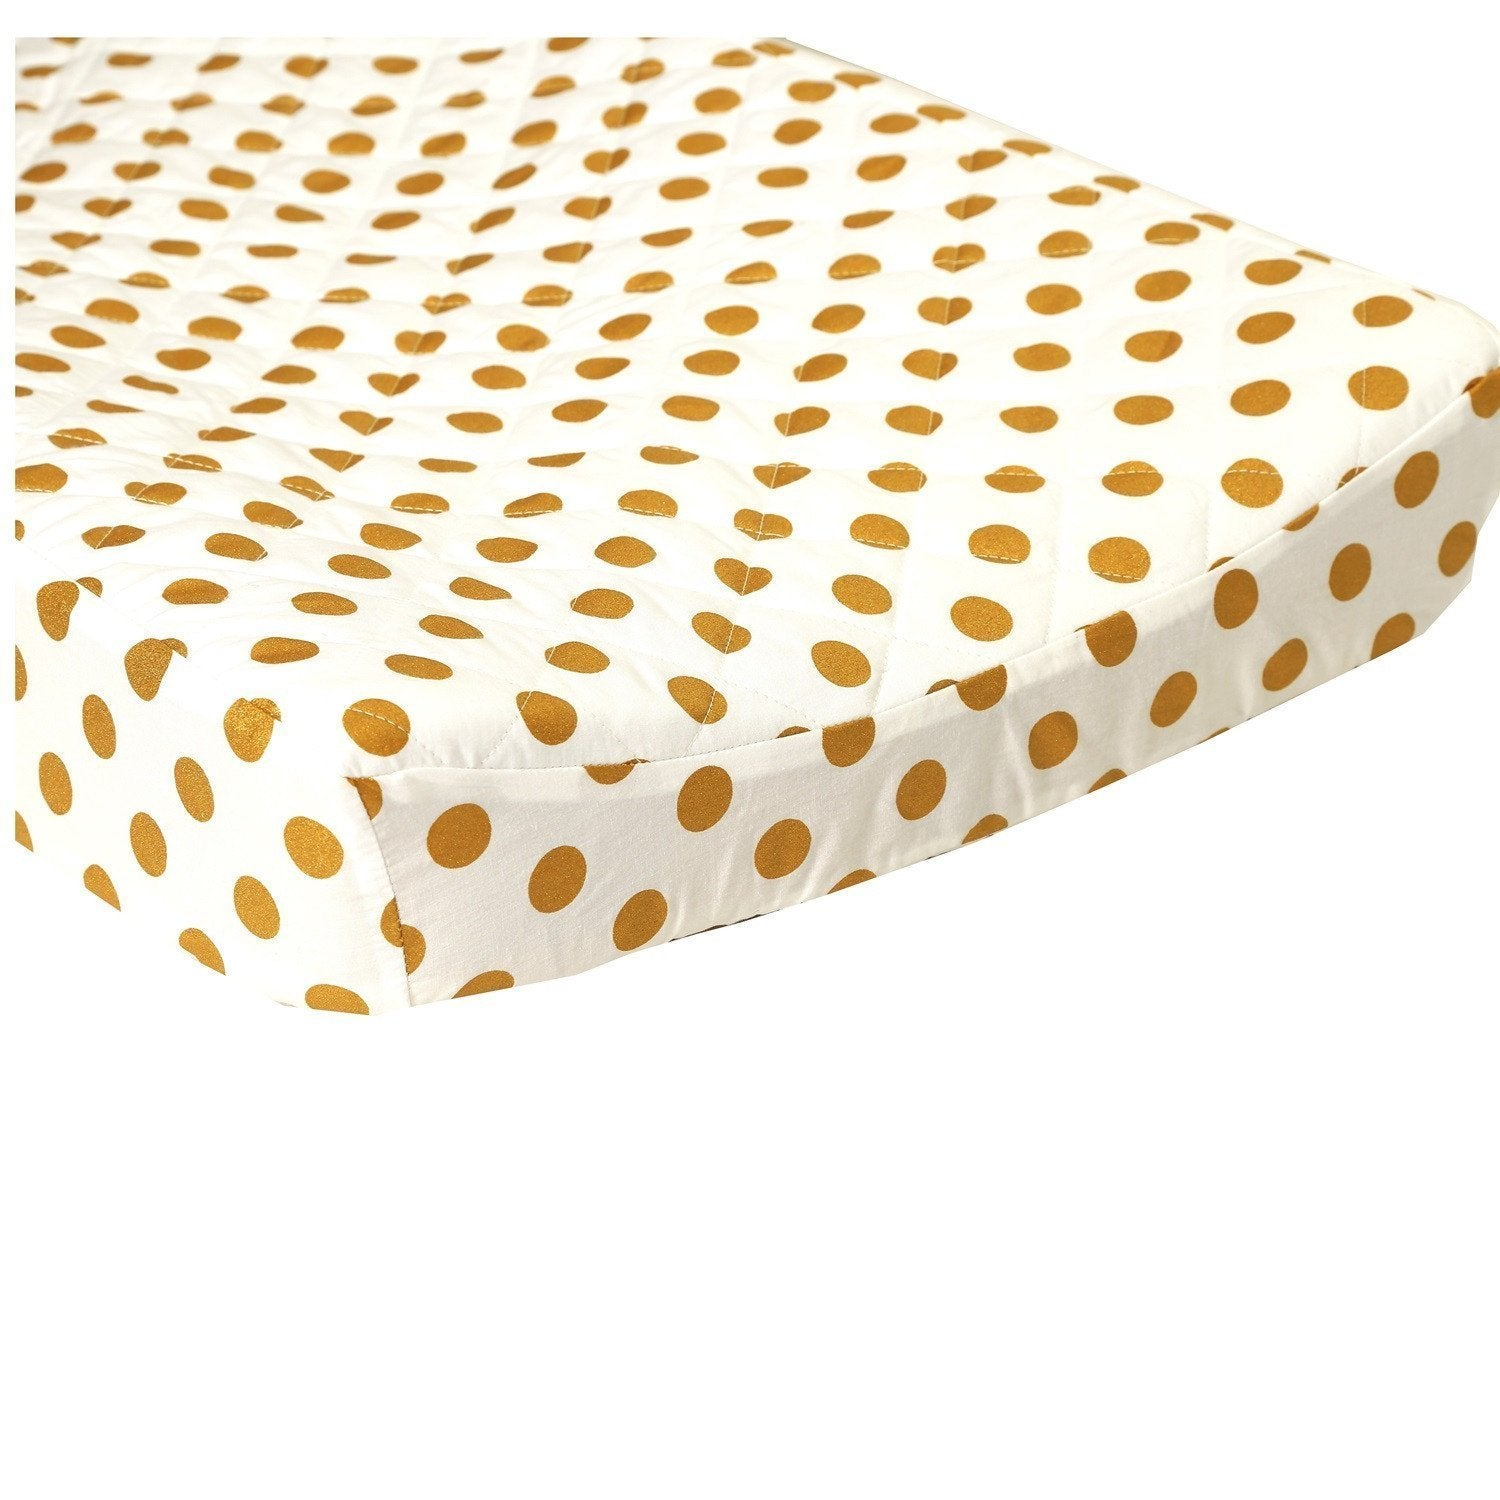 Quilted Changing Pad Cover | Metallic Gold Dots-Changing Pad Cover-Small Dots-Jack and Jill Boutique